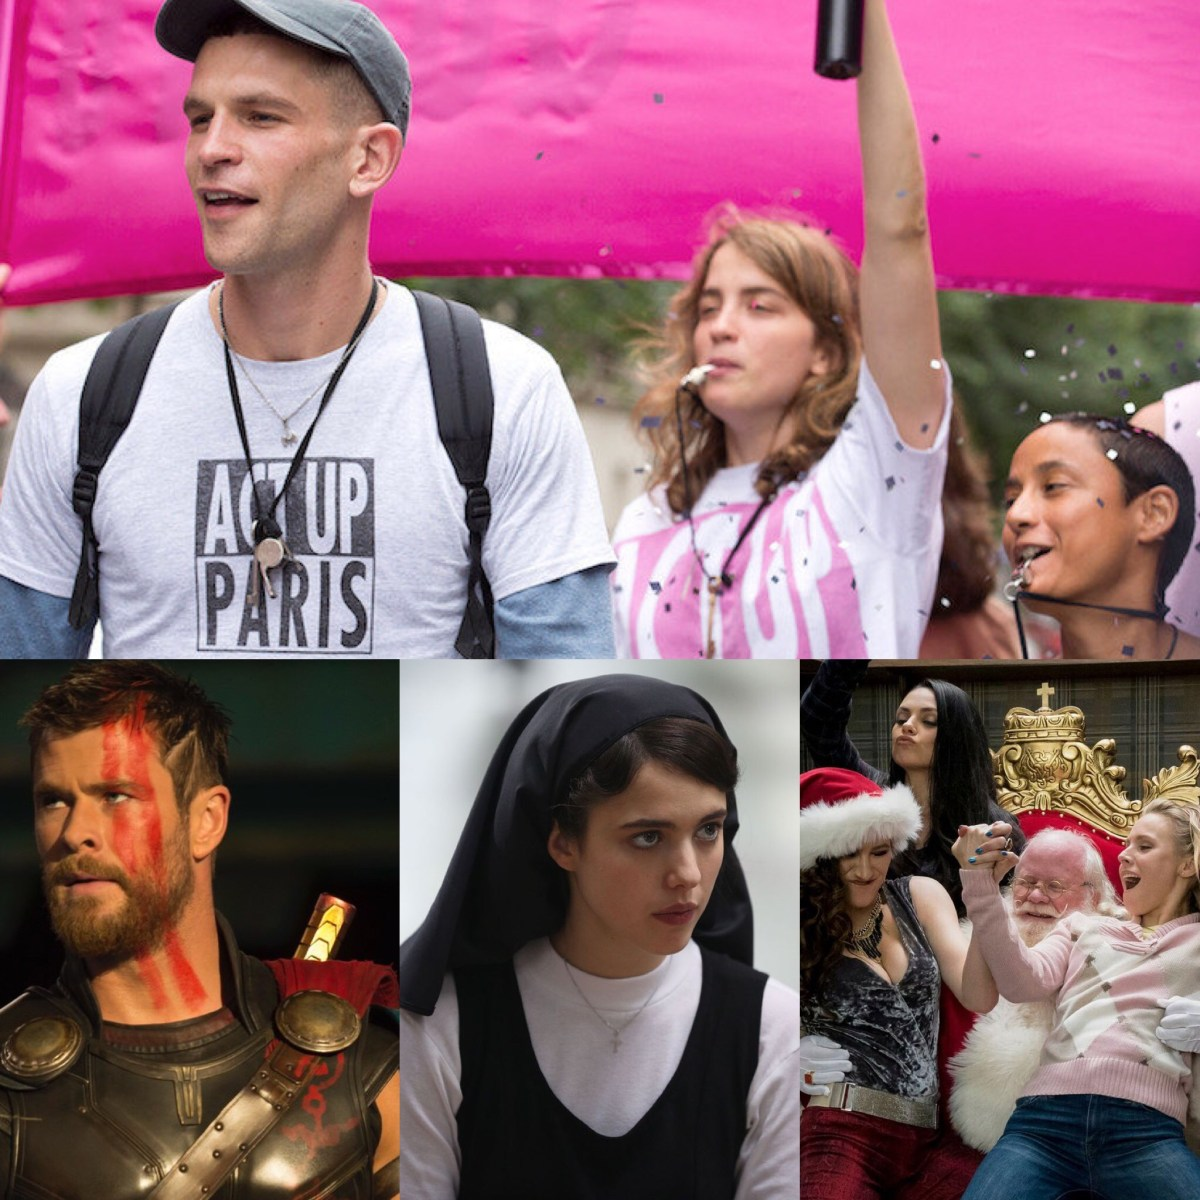 The Binge Movie Podcast: Thor: Ragnarok | A Bad Moms Christmas | Novitiate | BPM (Beats Per Minute)